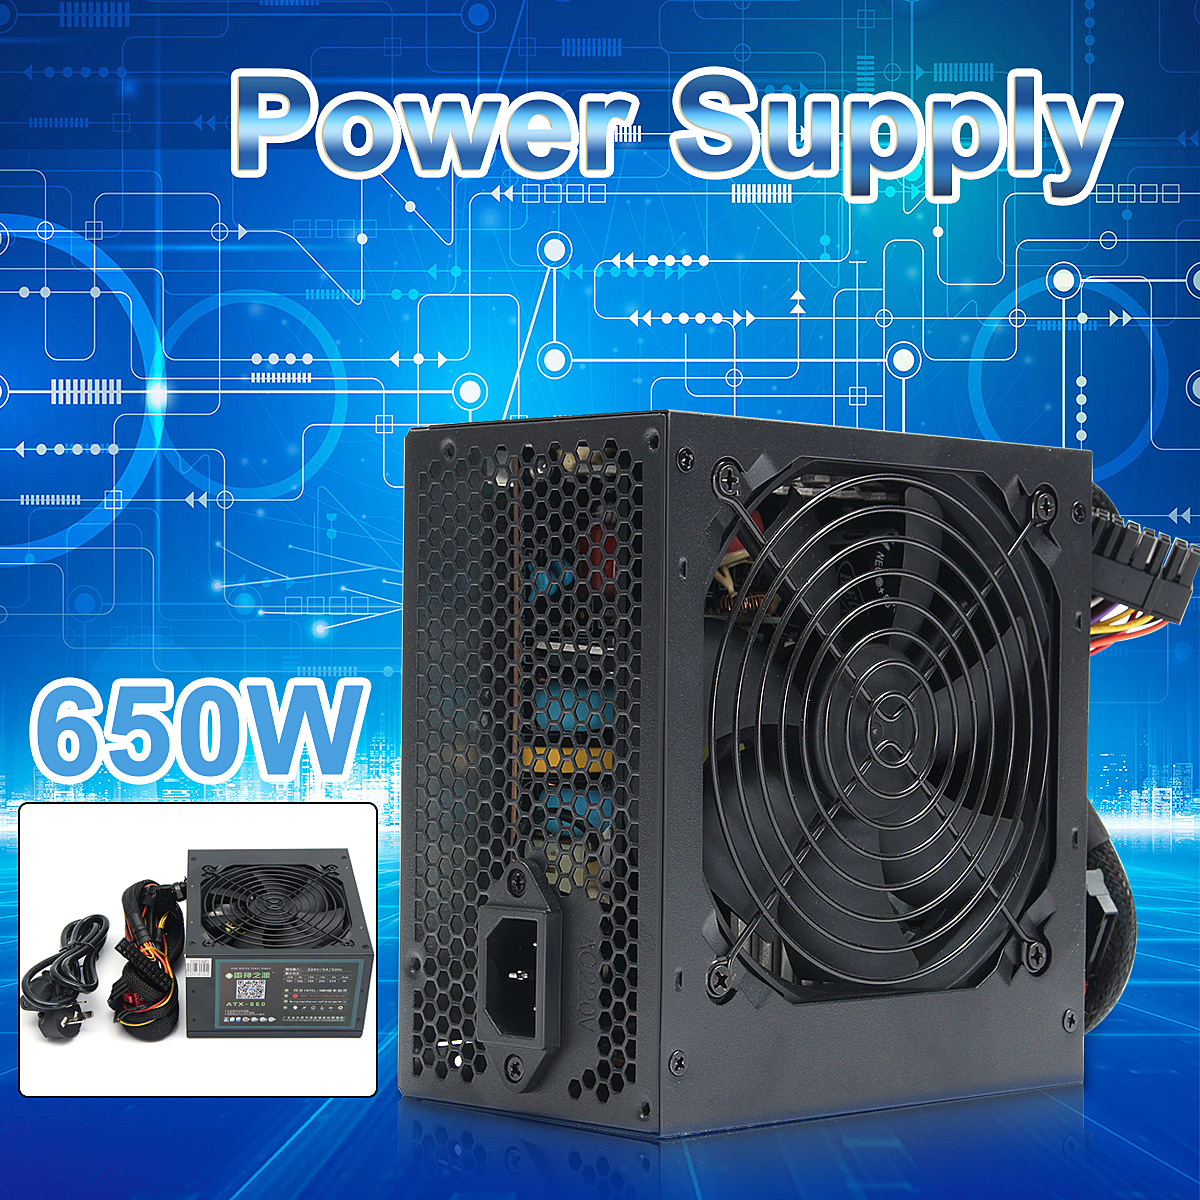 350W 650W Peak- PSU ATX 12V Gaming PC Power Supply 24Pin / Molex / Sata 12CM Fan Computer Power Supply For BTC запонки mitya veselkov сложные узелки